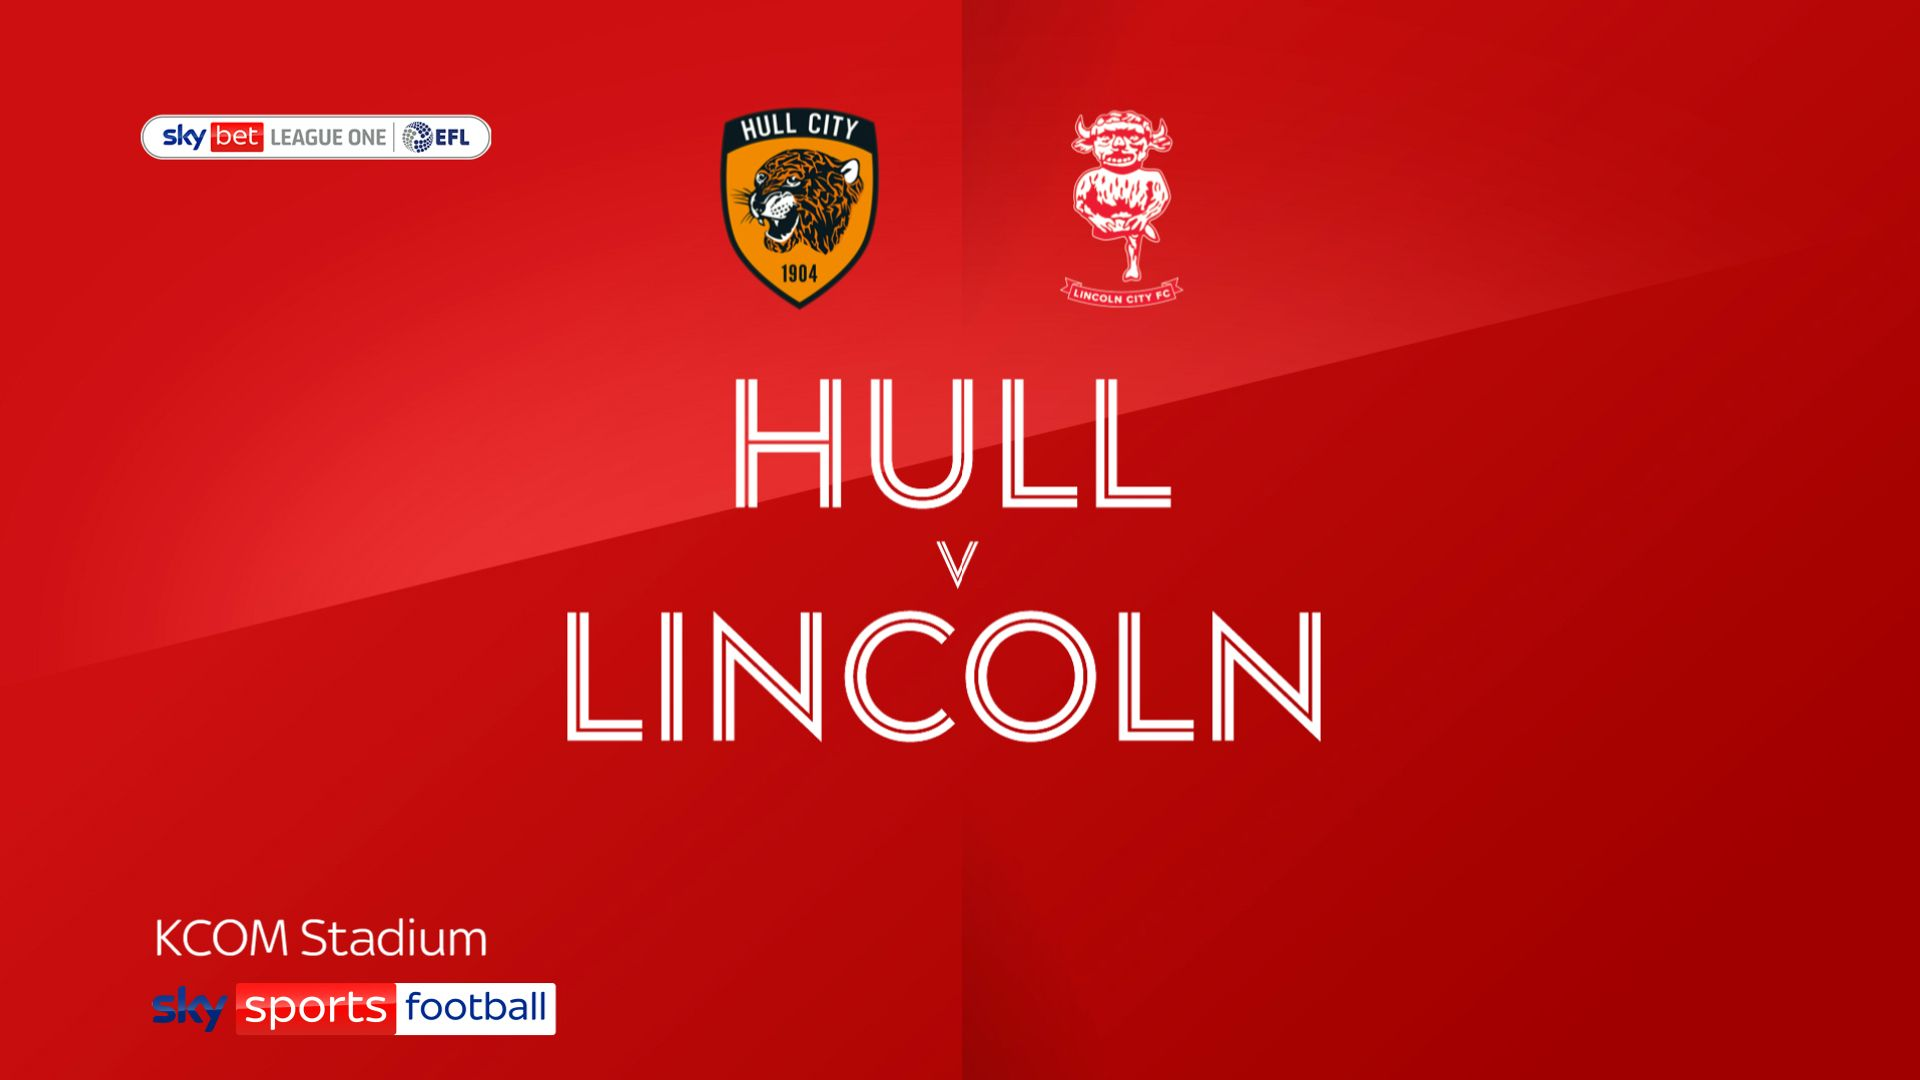 Promotion rivals Hull and Lincoln play out stalemate